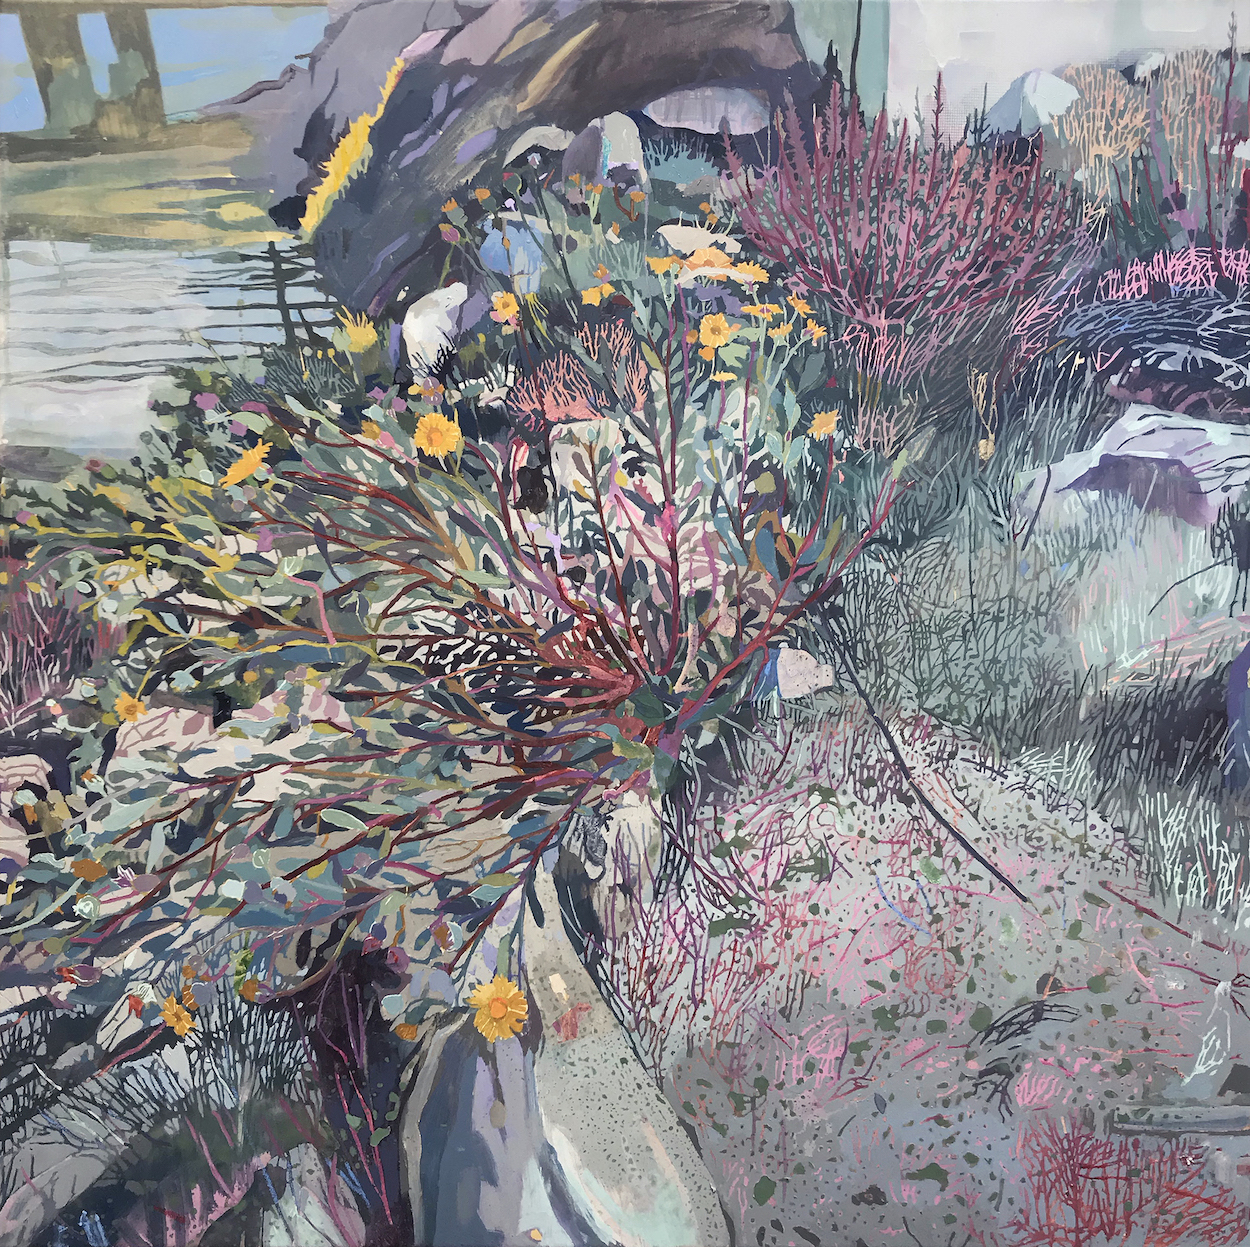 Winner of Emerging Artist Prize in Jackson's Painting Prize 2020